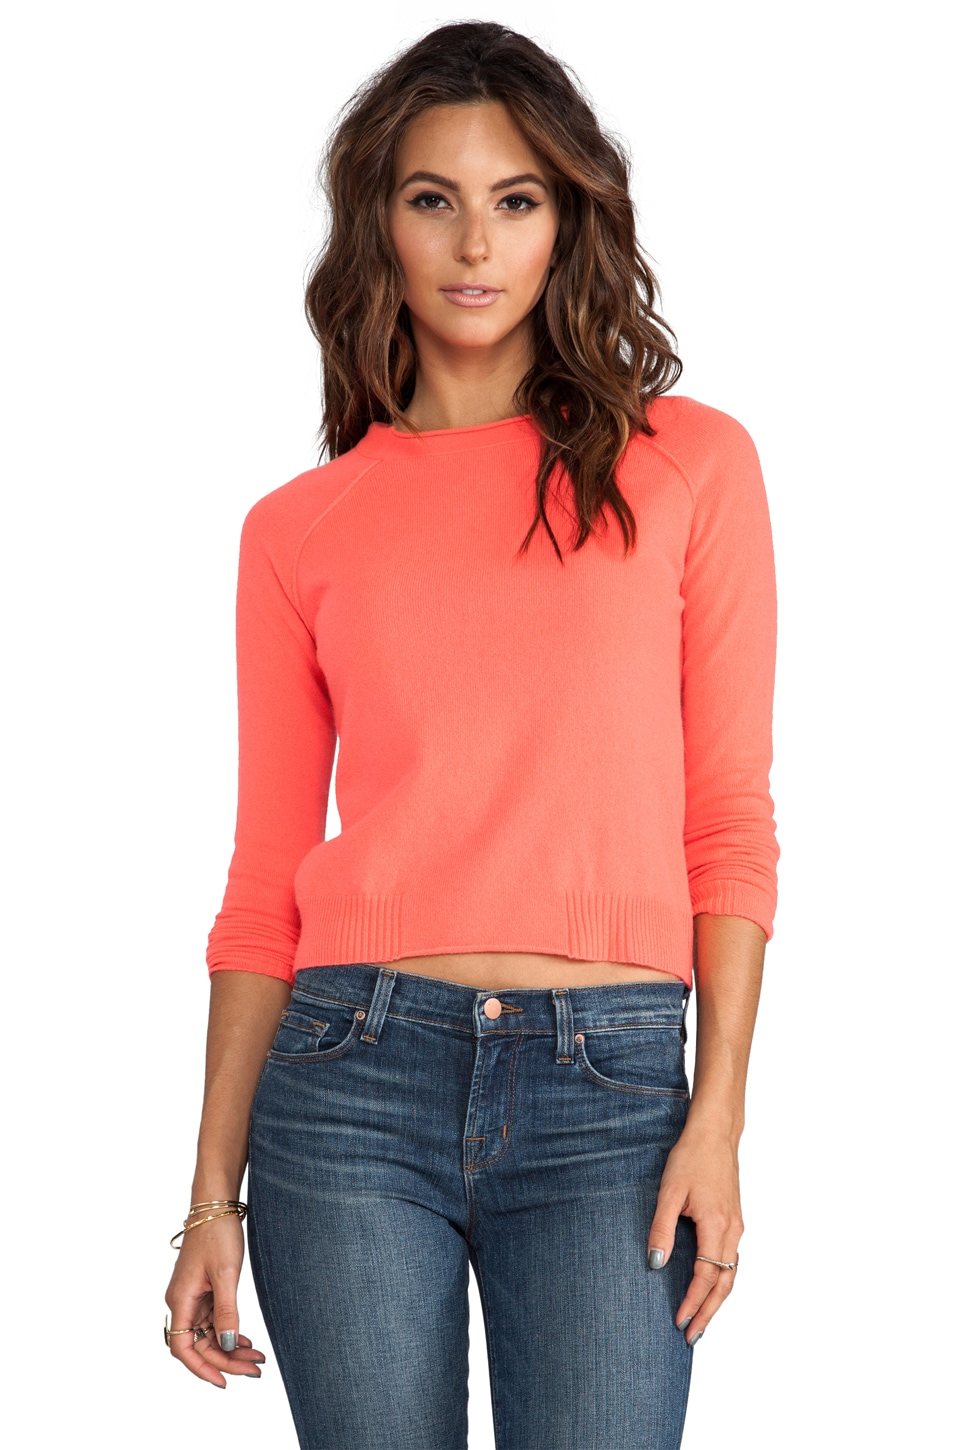 Autumn Cashmere Raw Edge Crop Sweater in Flash